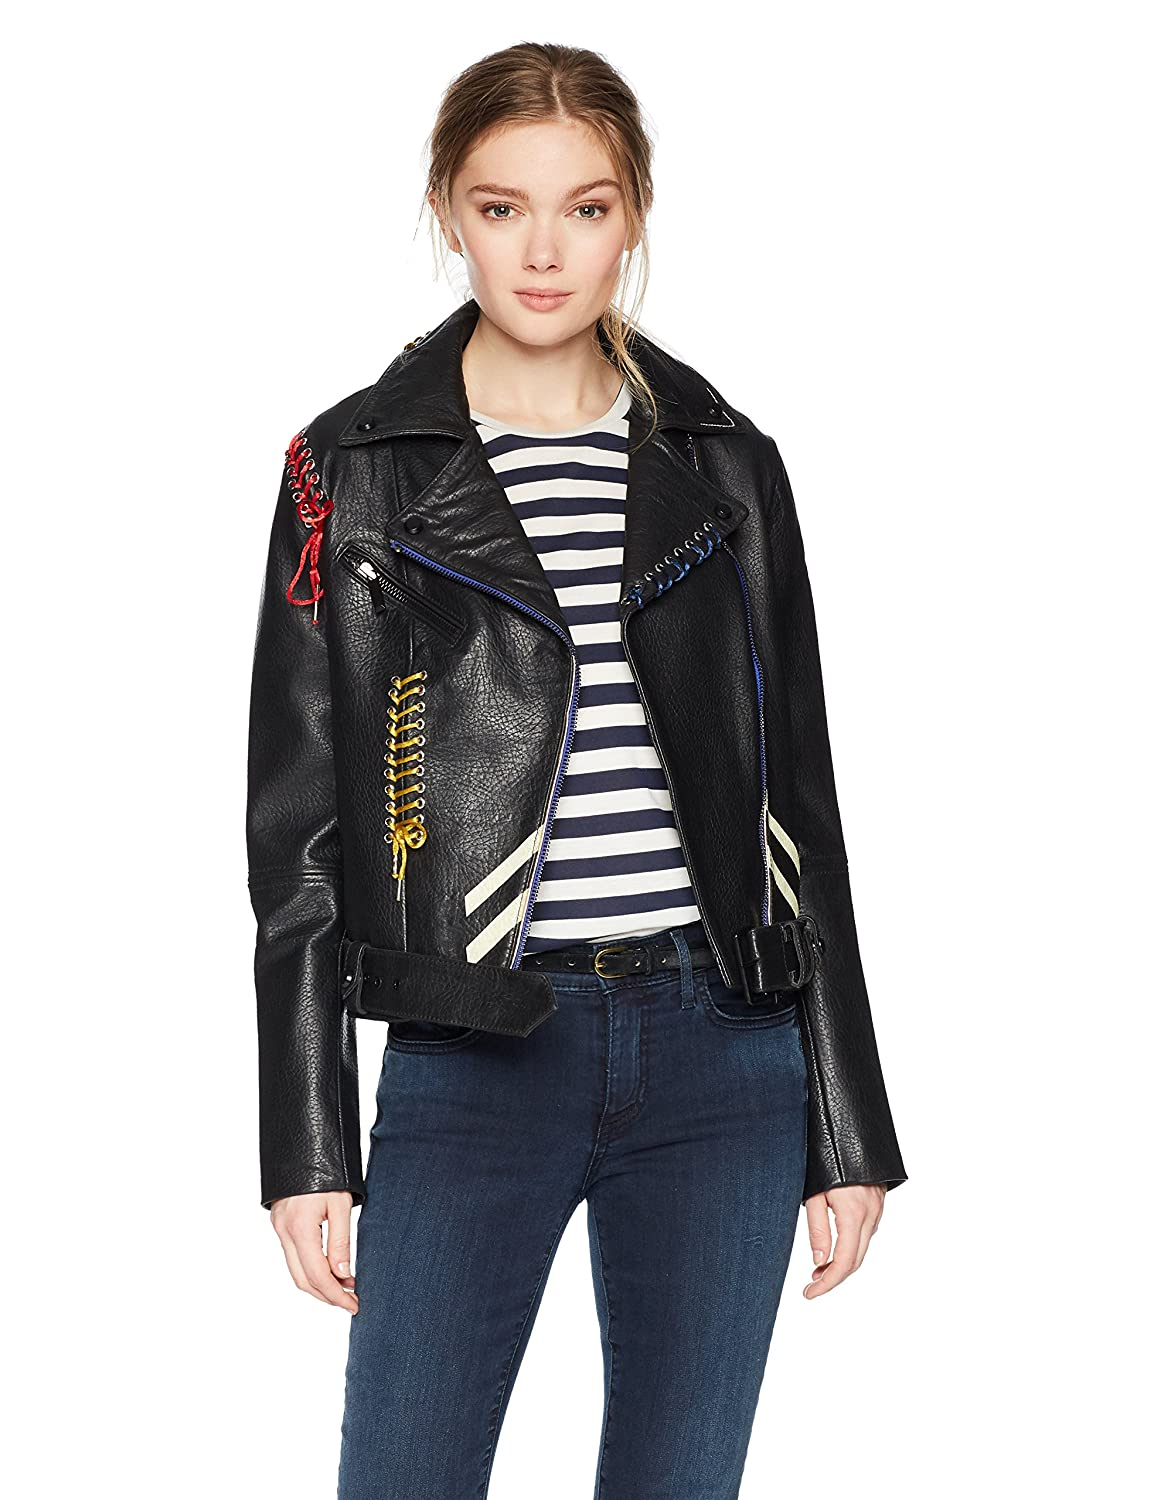 Black Bagatelle Women's Picasso Textured Leather Biker Jacket